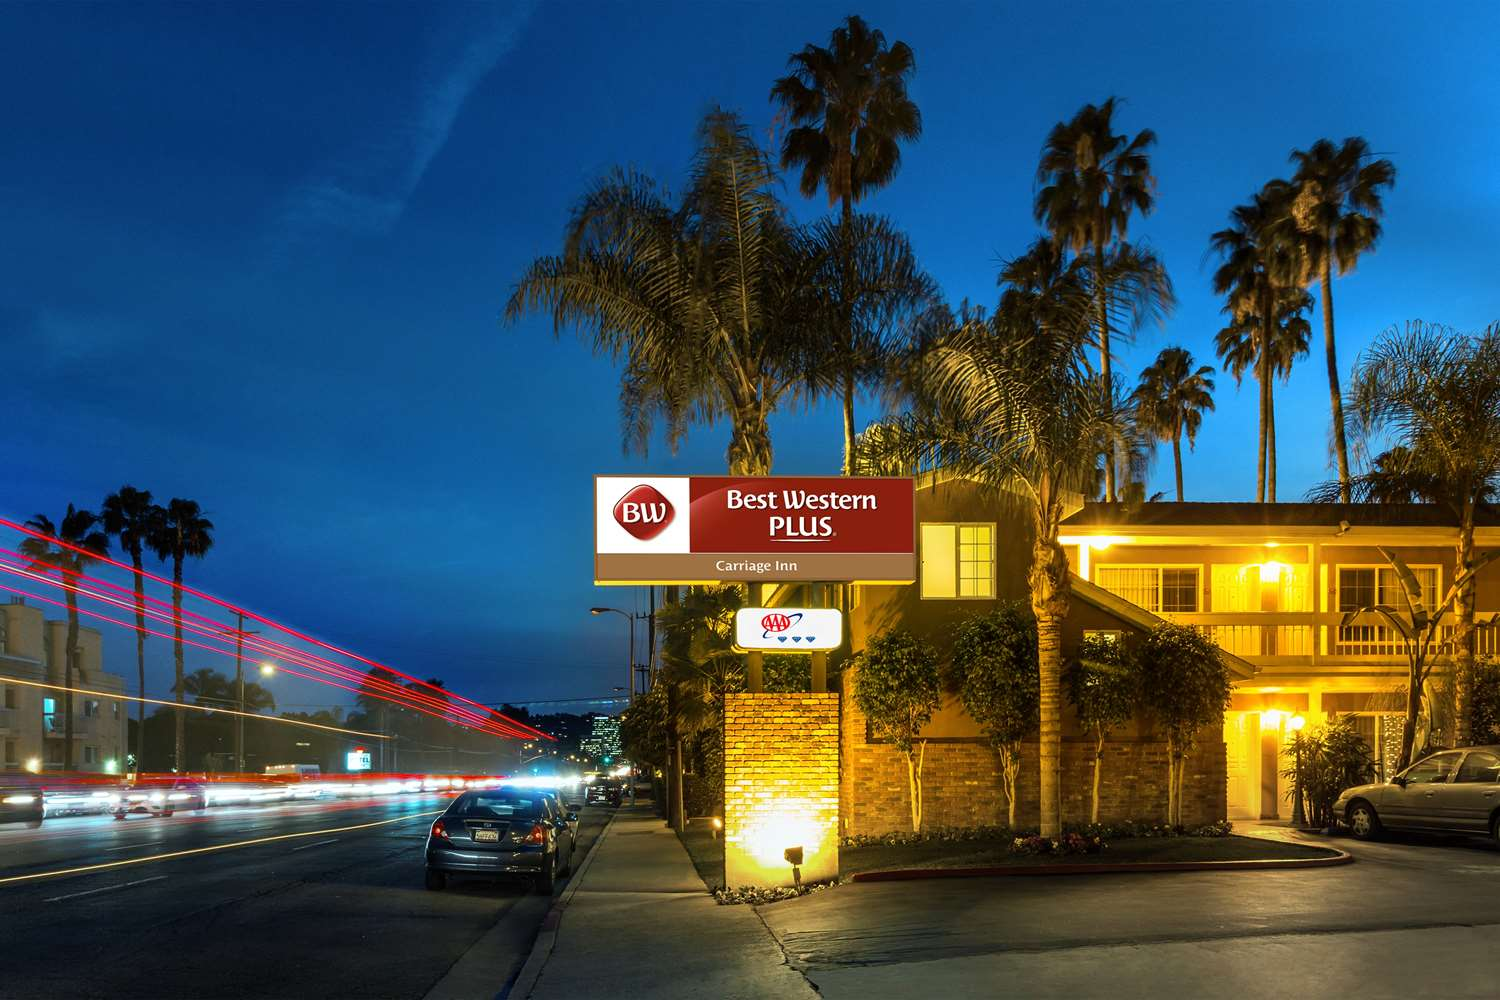 Best Western Plus Carriage Inn Sherman Oaks